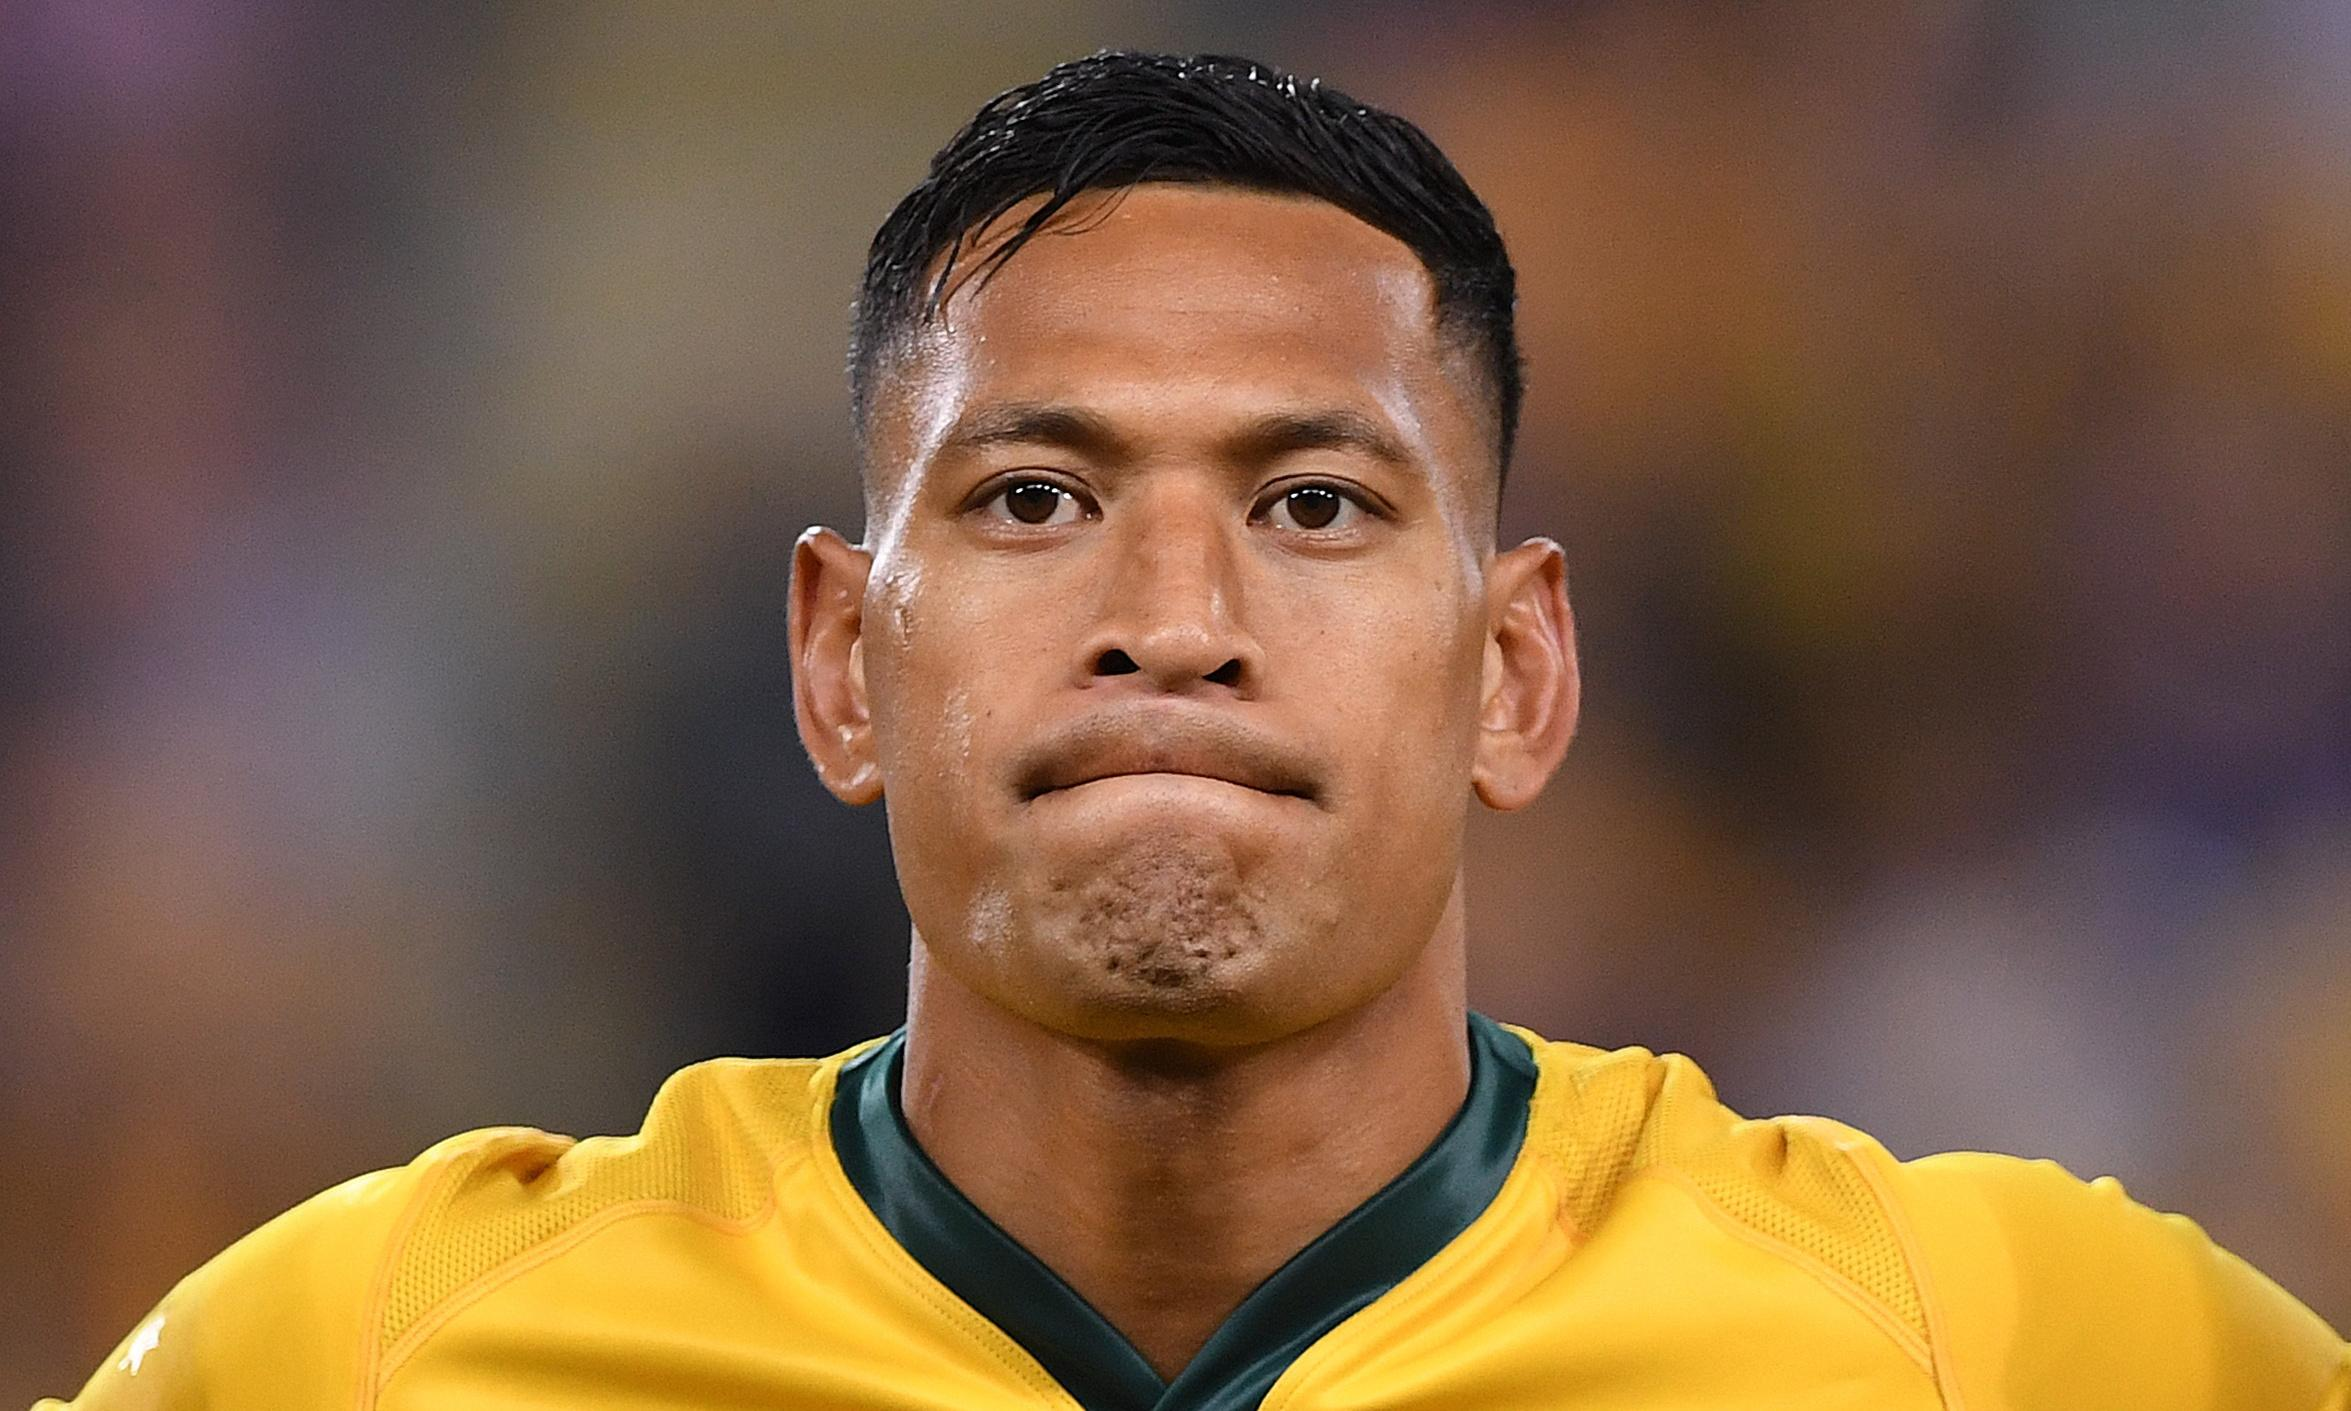 Israel Folau says he will seek apology from Rugby Australia over sacking